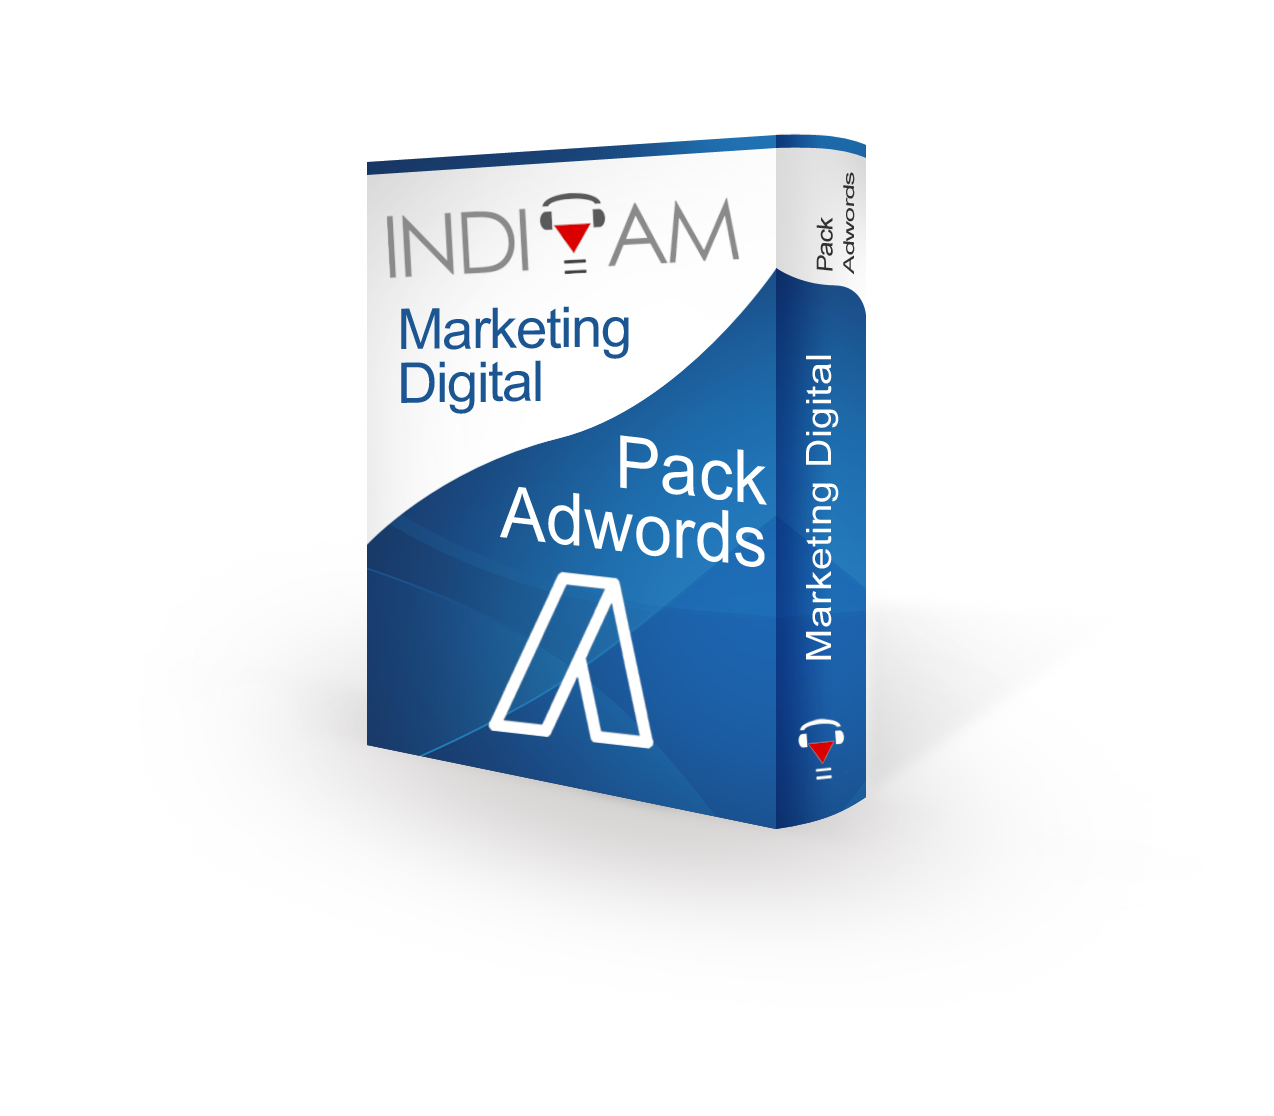 Pack Adwords